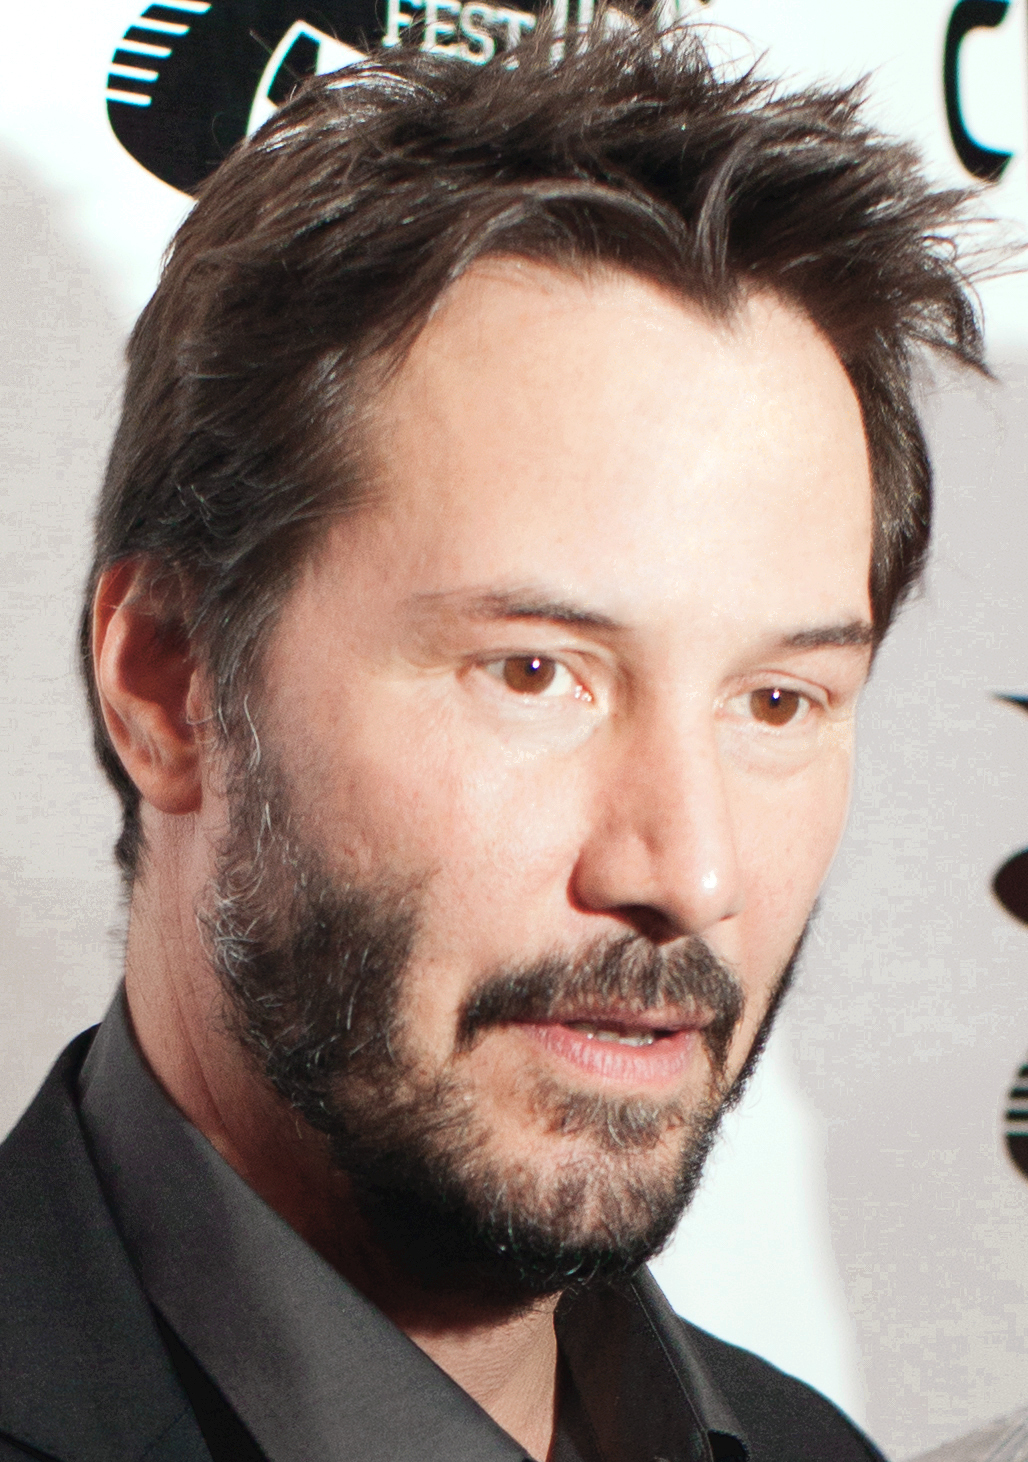 Keanu Reeves - Wikiped...